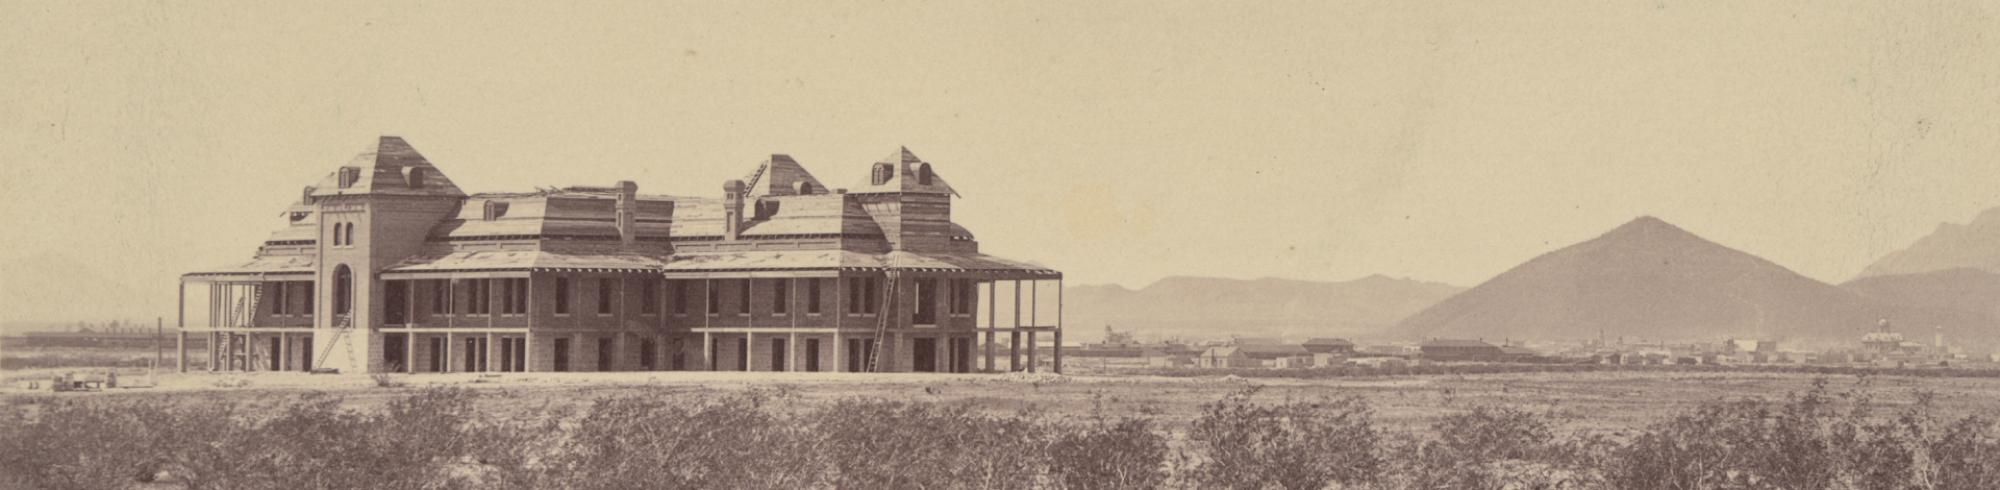 Old Main against a desert backdrop as it's being built, mountains can be seen in the background